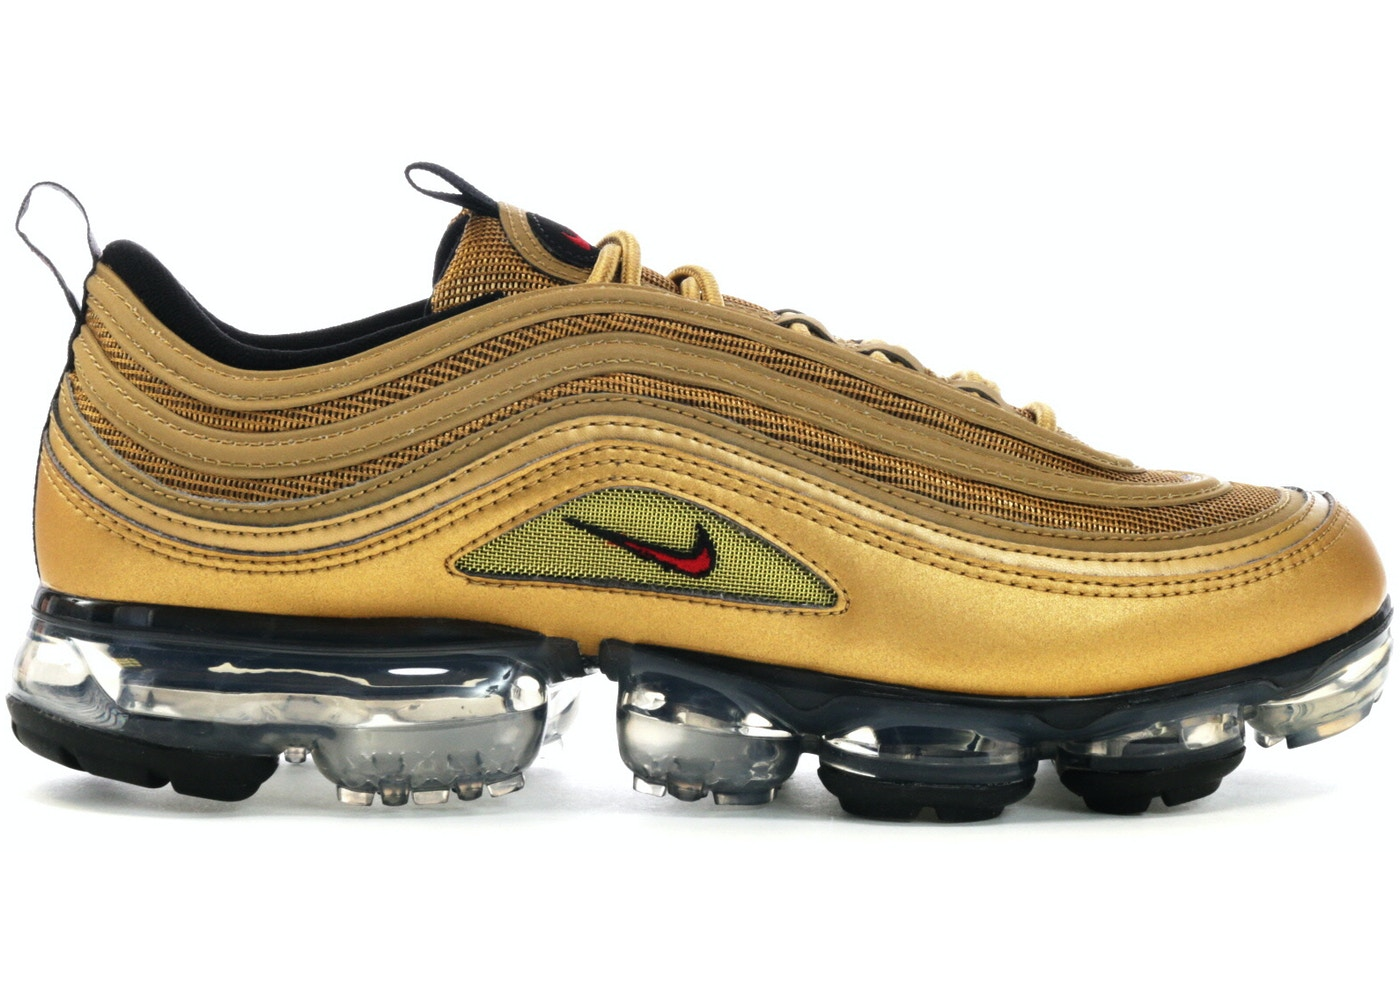 premium selection 86c7d c705c Air VaporMax 97 Metallic Gold - AJ7291-700